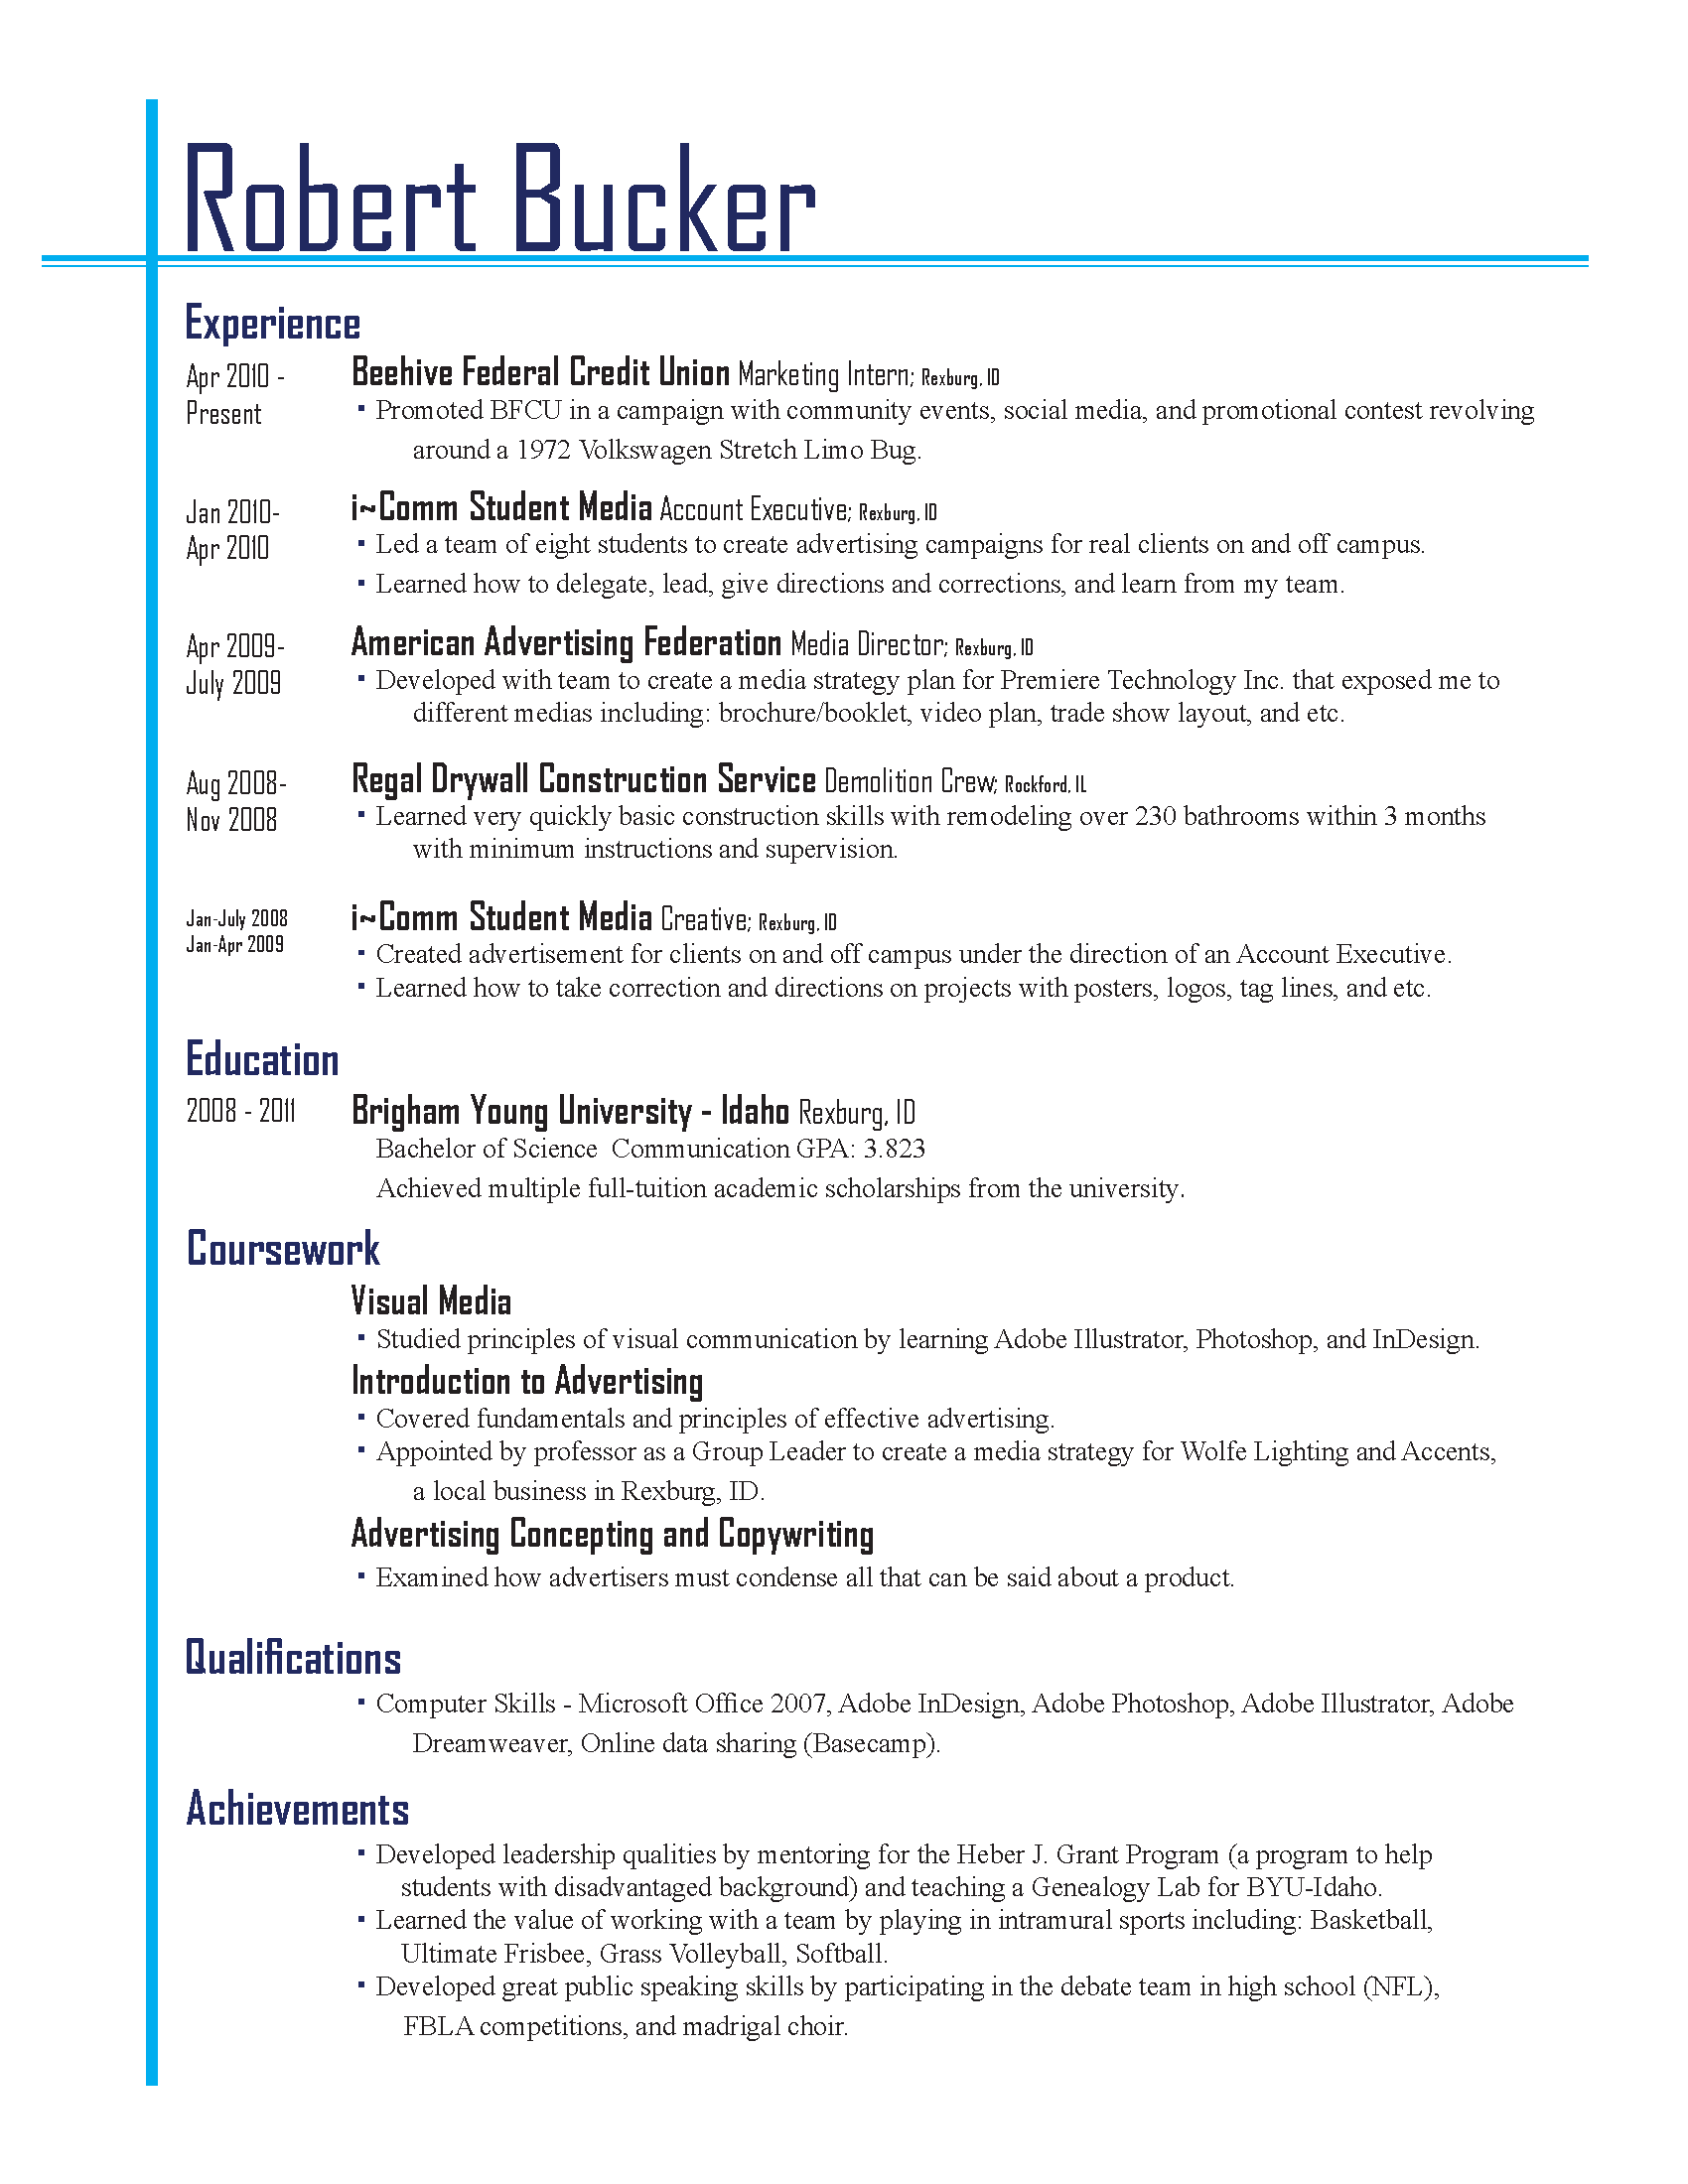 Pin By Bonnie Dridi On Bonnie Dridi Resume Layout Good Resume Examples Cover Letter For Resume